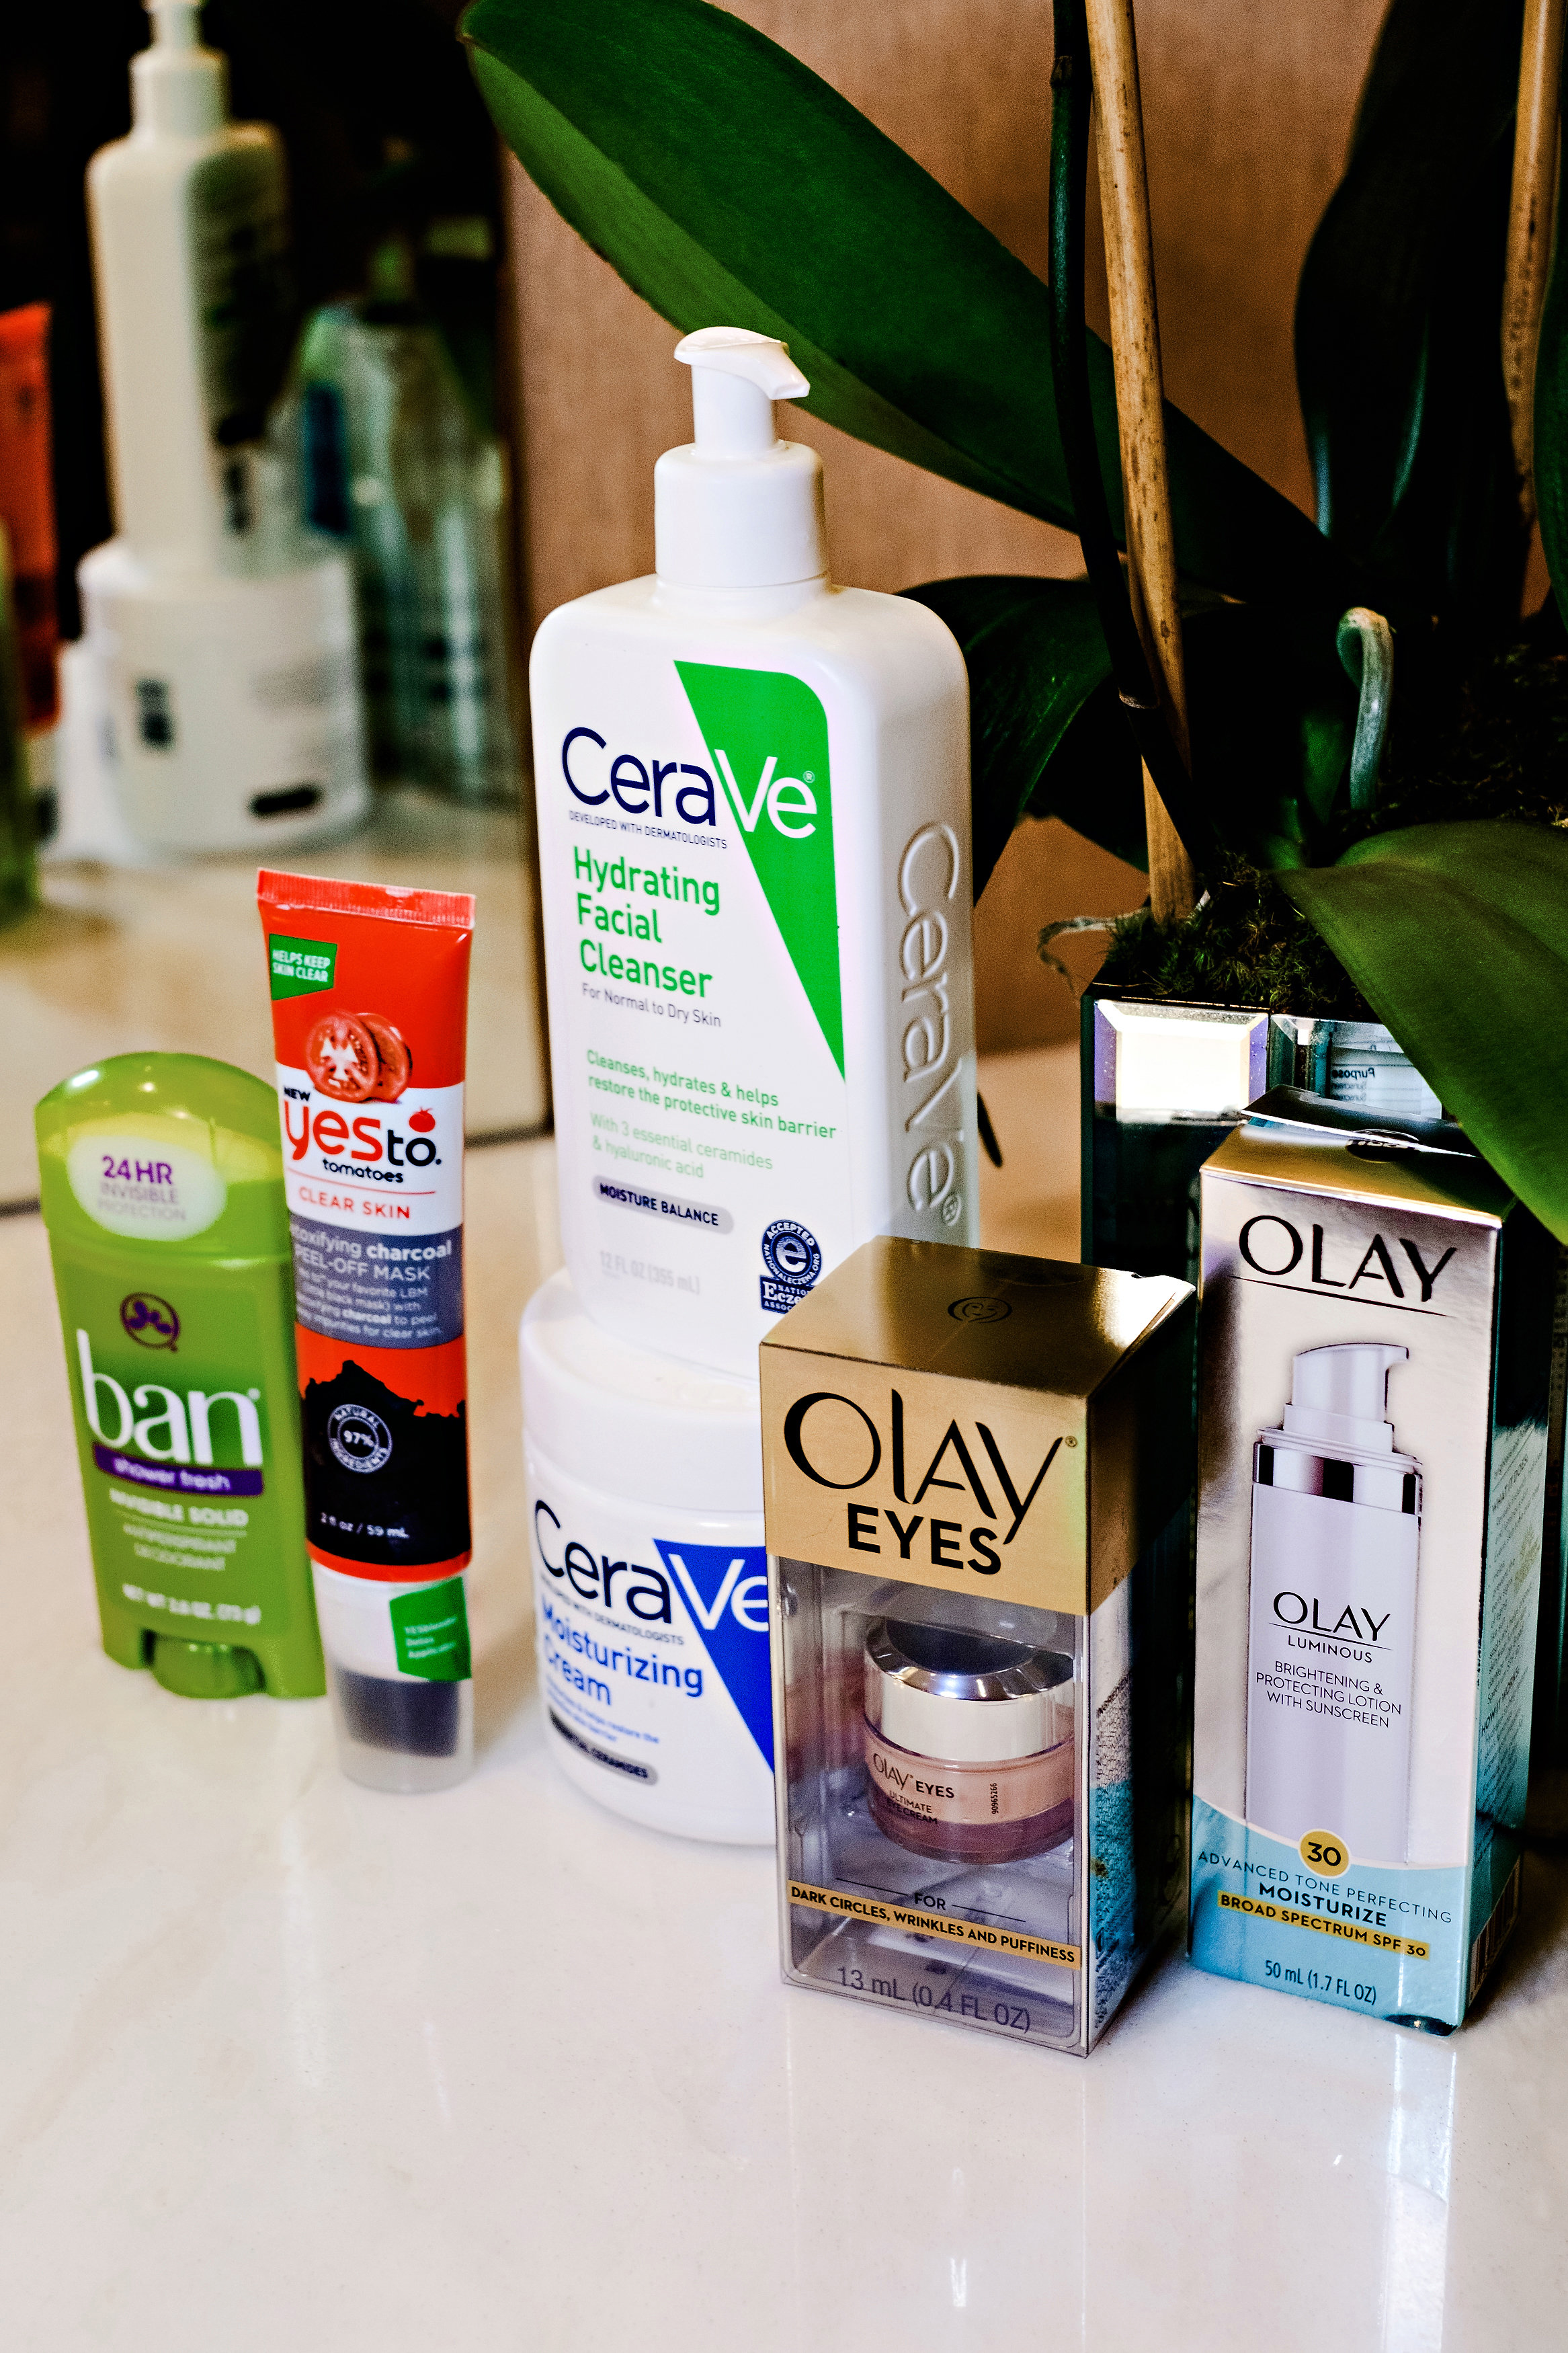 Drugstore Skincare with CVS by Atlanta style blogger Happily Hughes